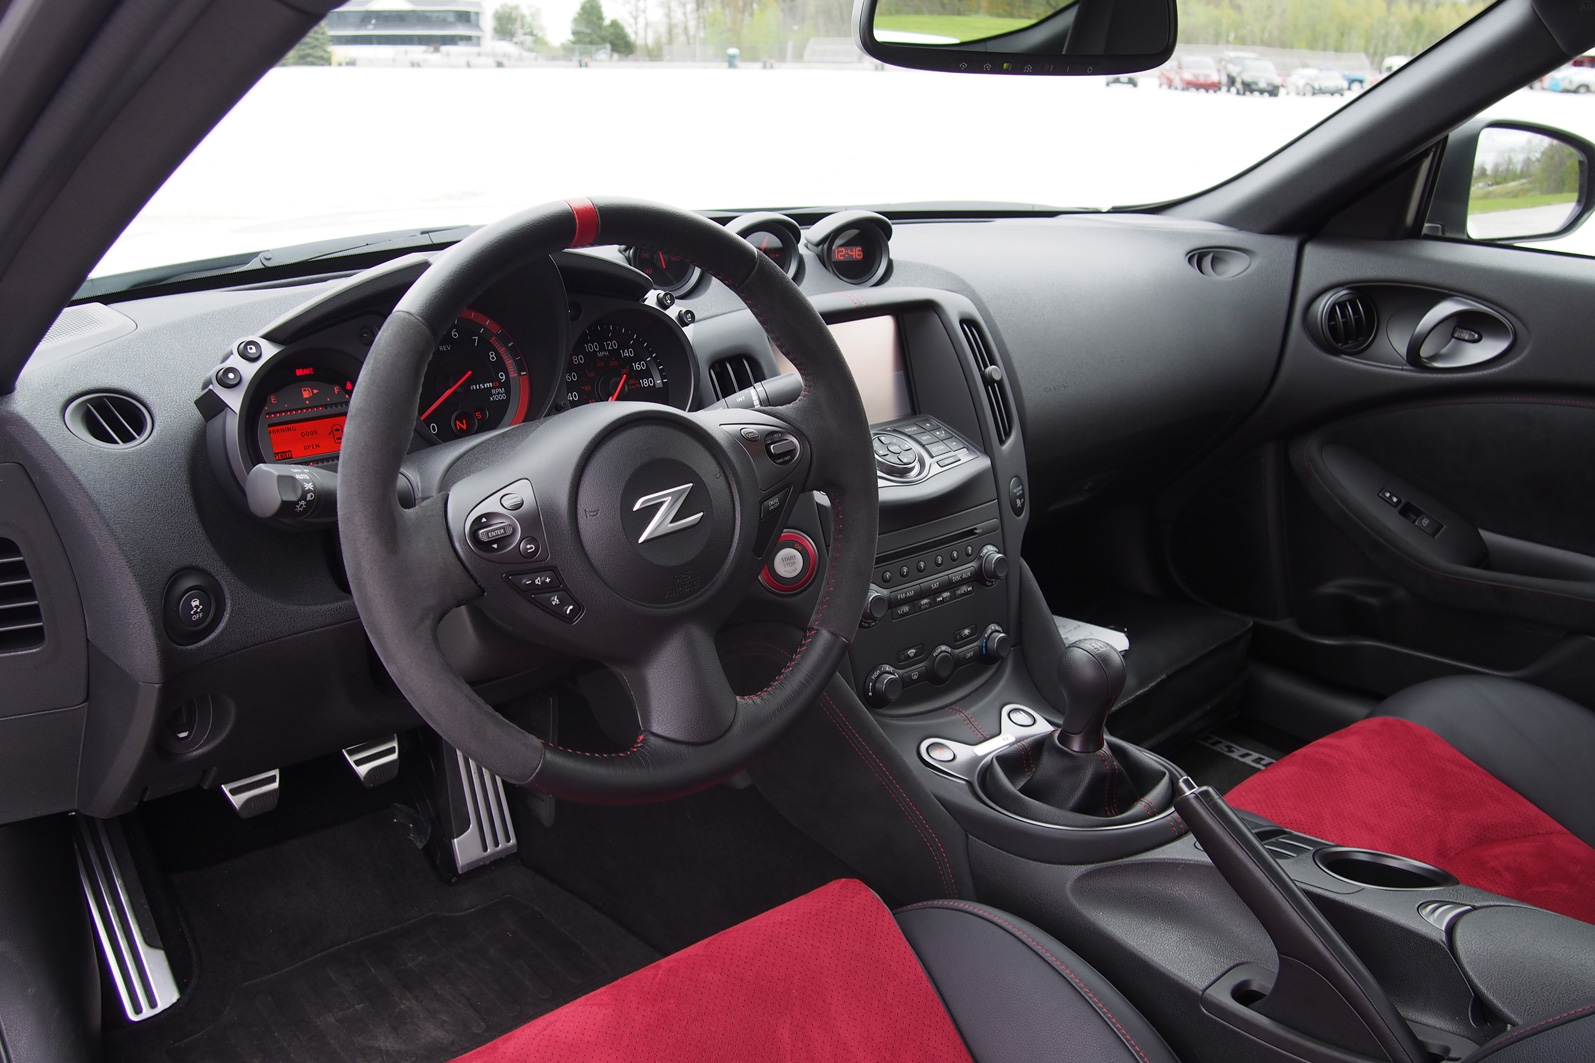 2015 ford mustang gt vs 2015 nissan 370z nismo autoguide news 2015 nissan 370z nismo interior 03 vanachro Image collections